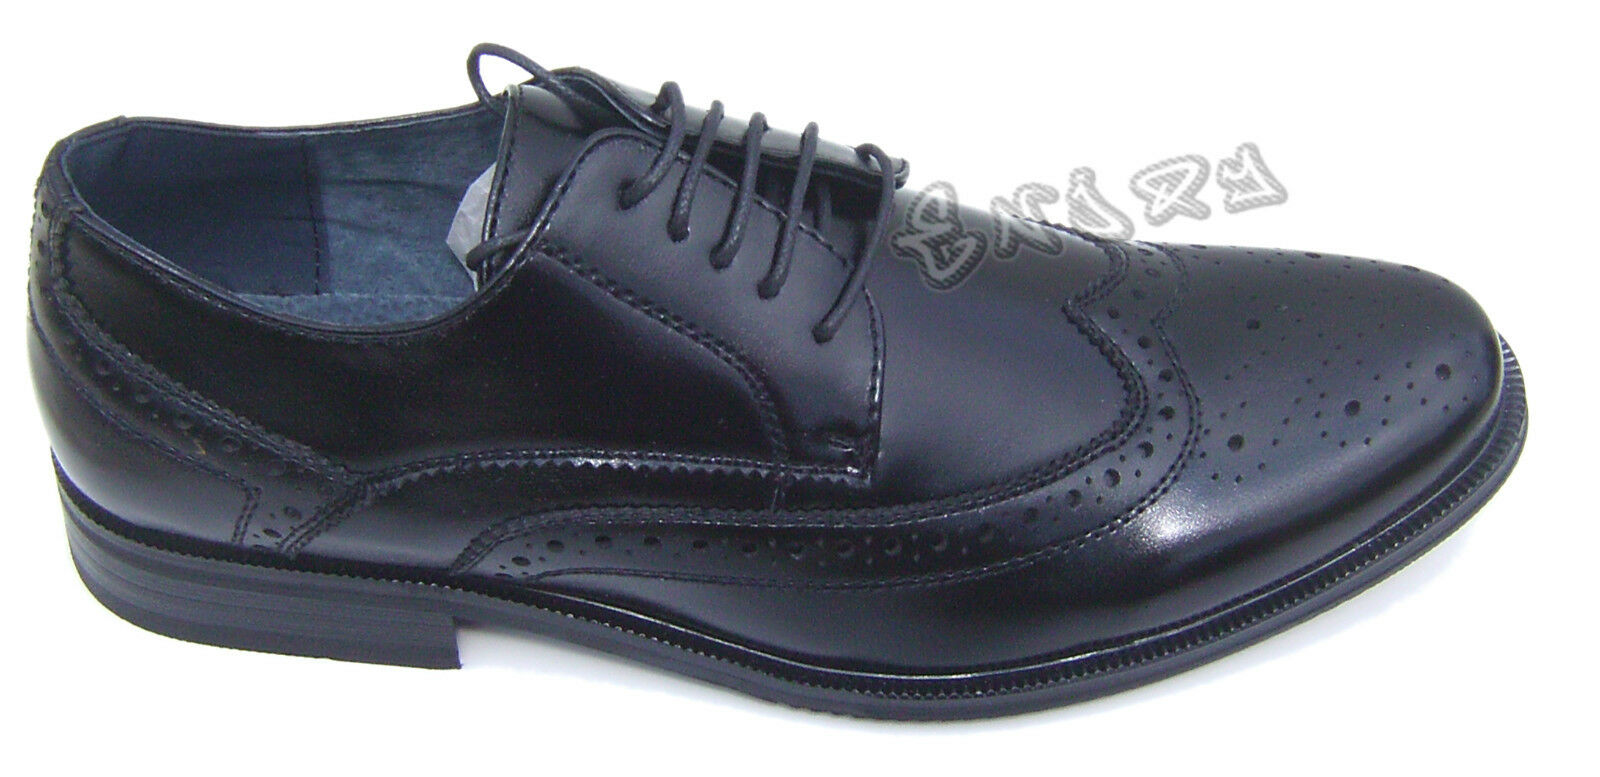 shoes CLASSICHE men shoes ELEGANTI CON LACCI CERIMONIA 41 42 43 44 45 art.458